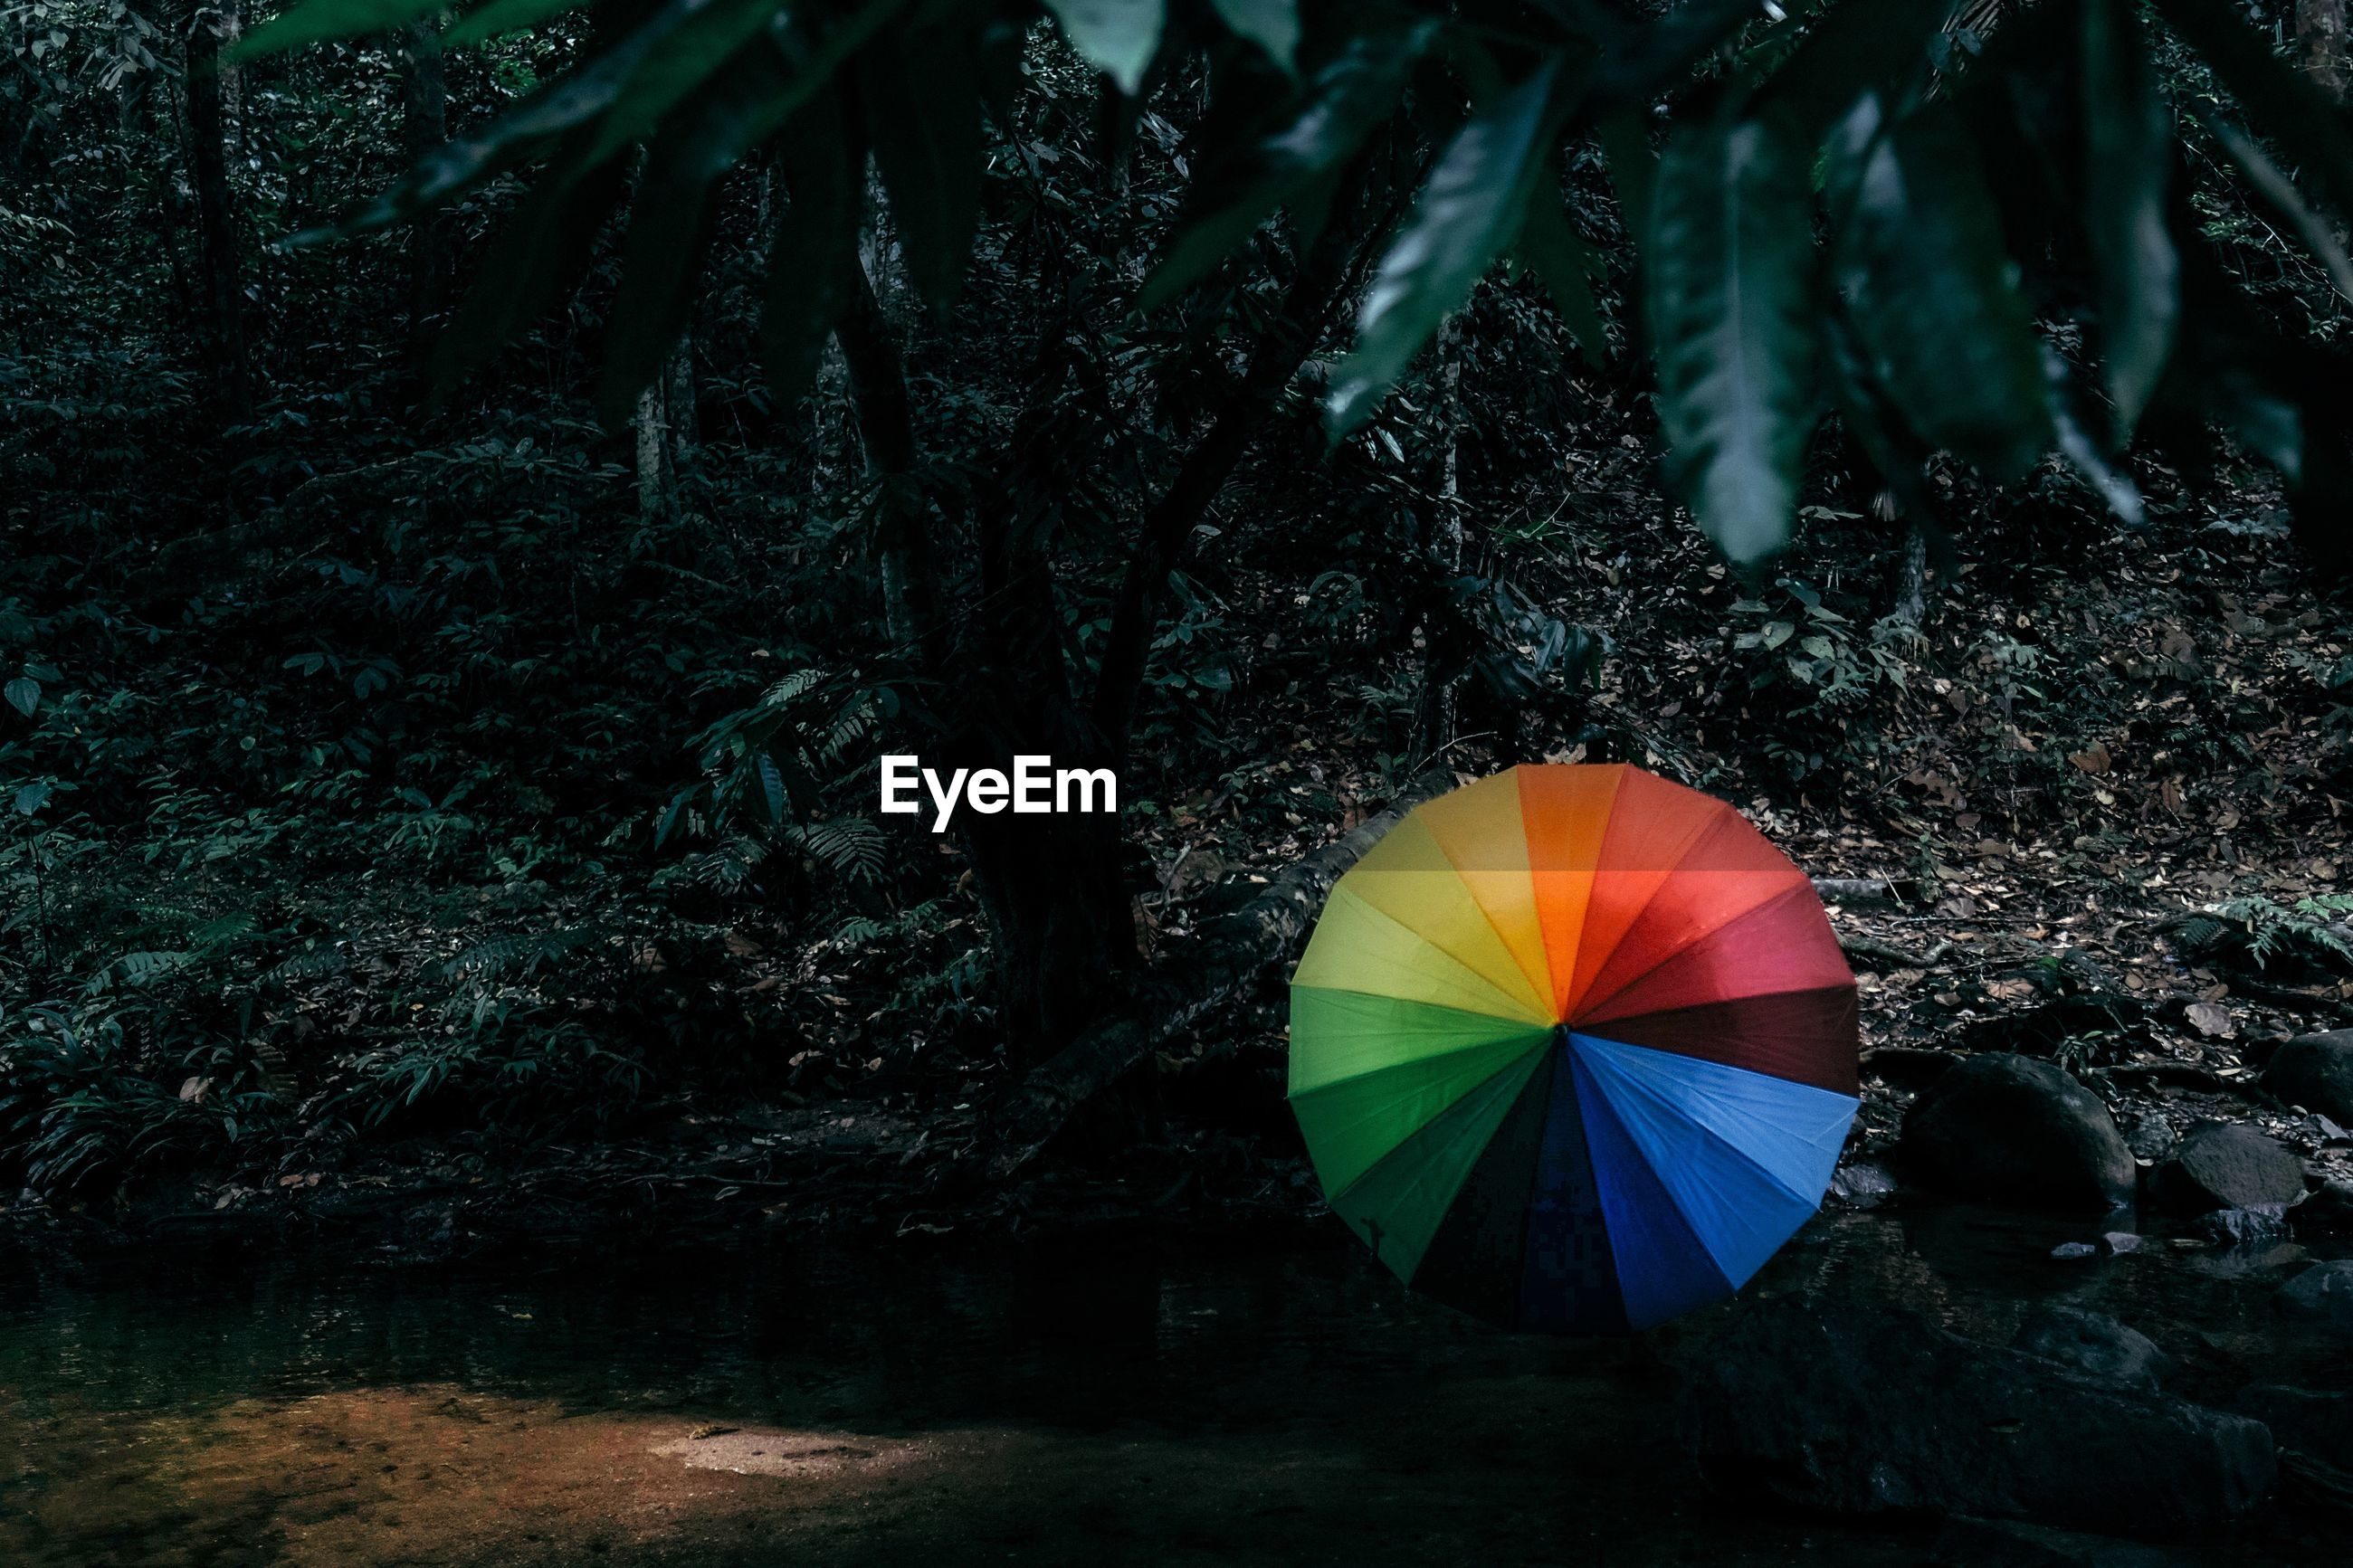 Multi colored umbrella against trees in forest